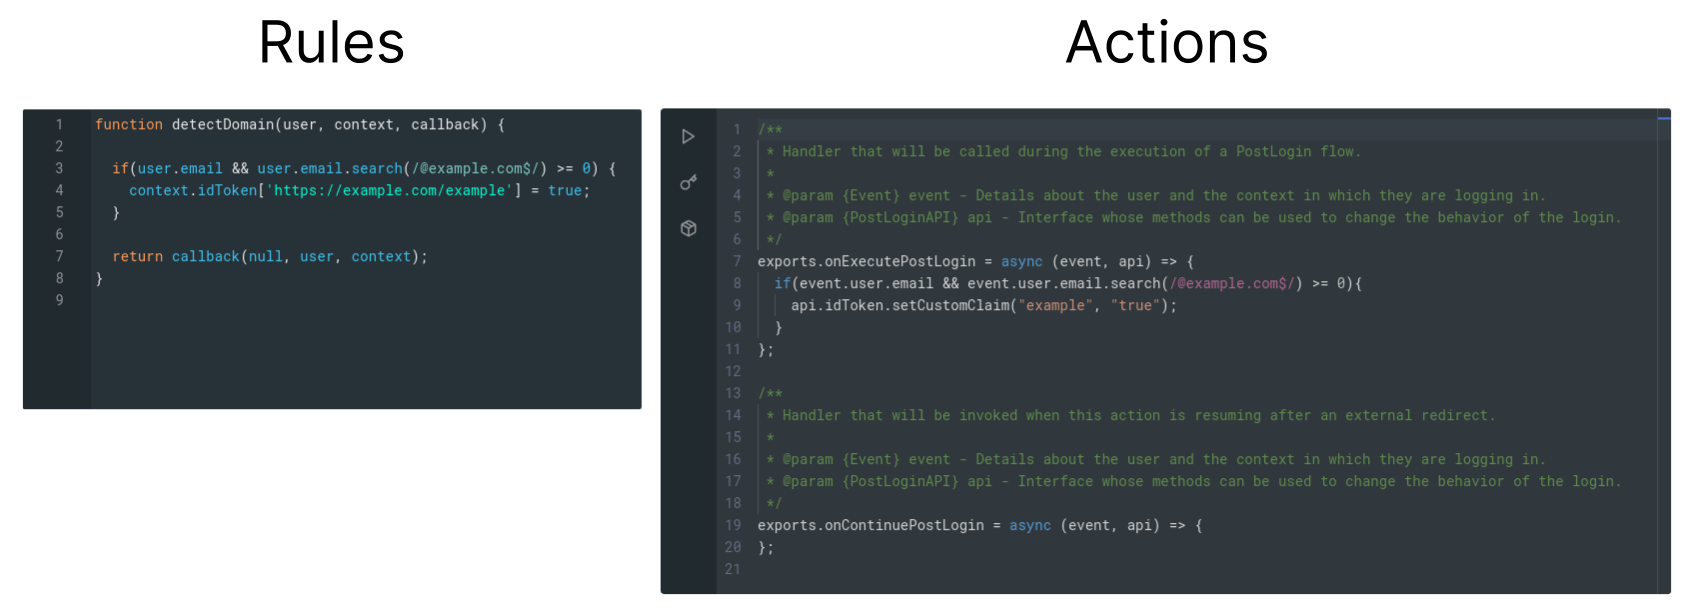 The difference between the Rules and Actions editors